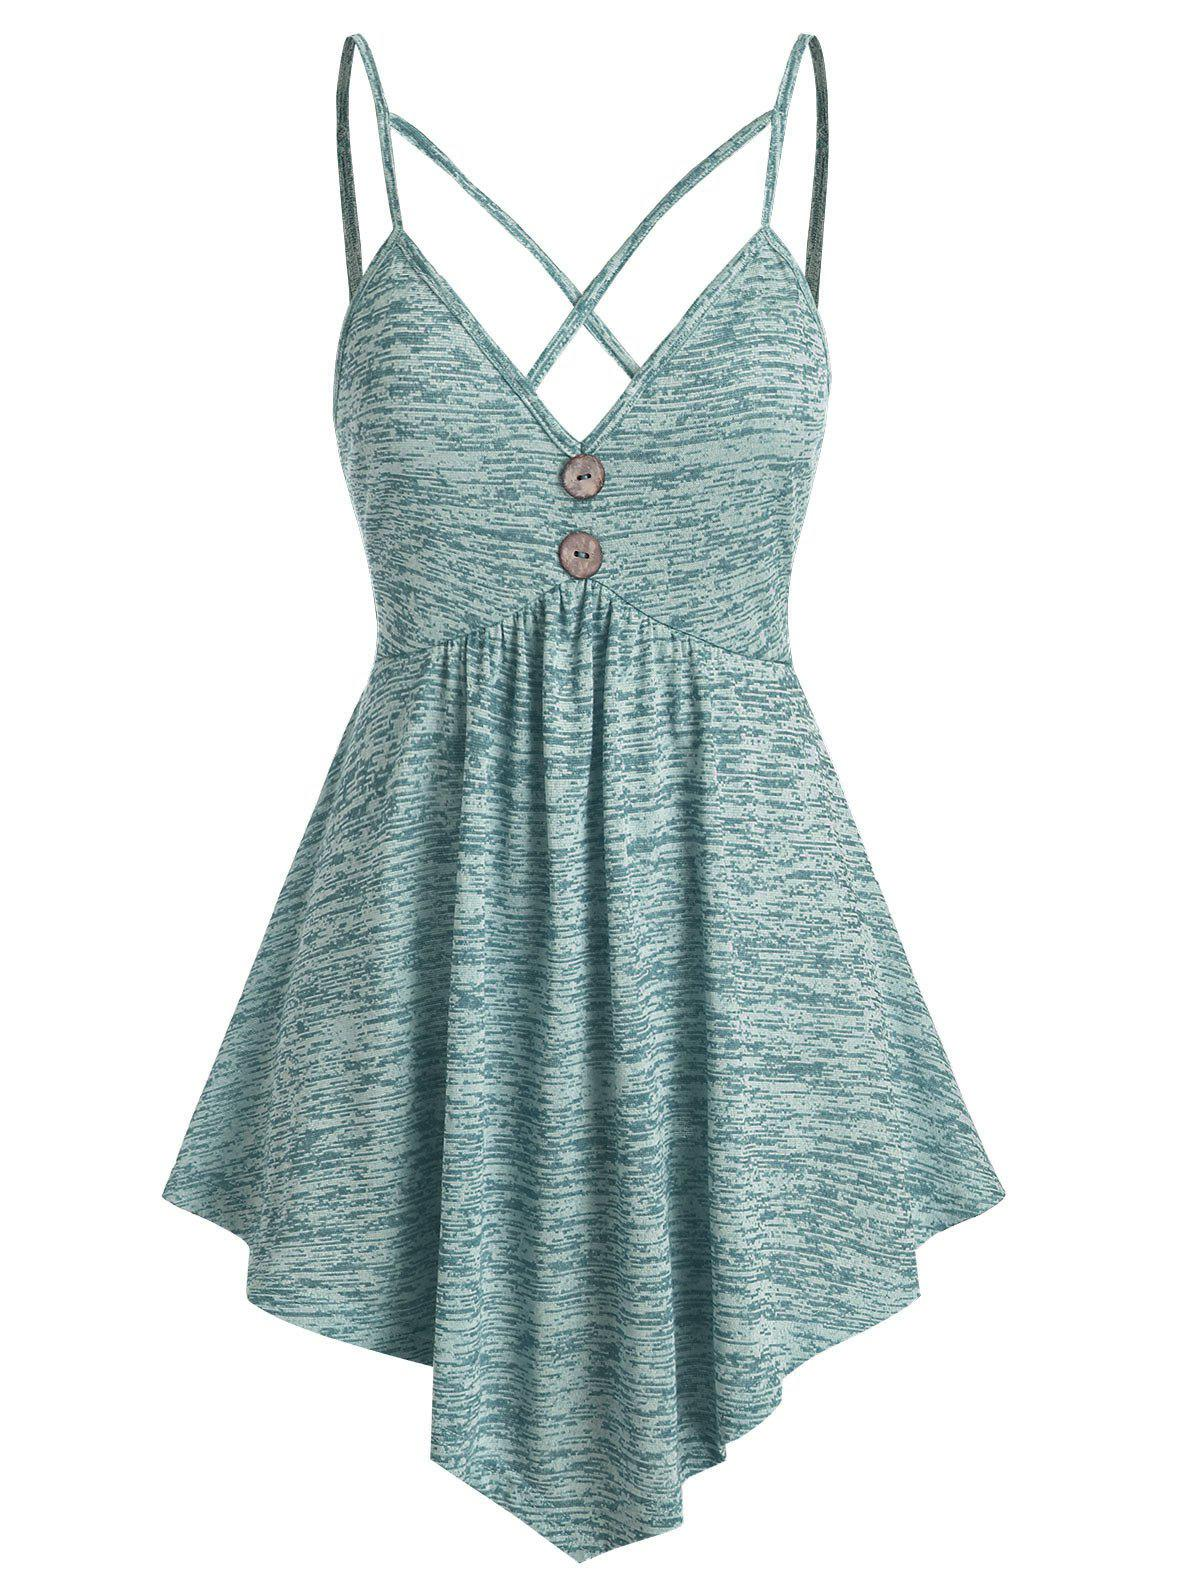 Harness Strap Space Dye Cami Tank Top - MEDIUM TURQUOISE M